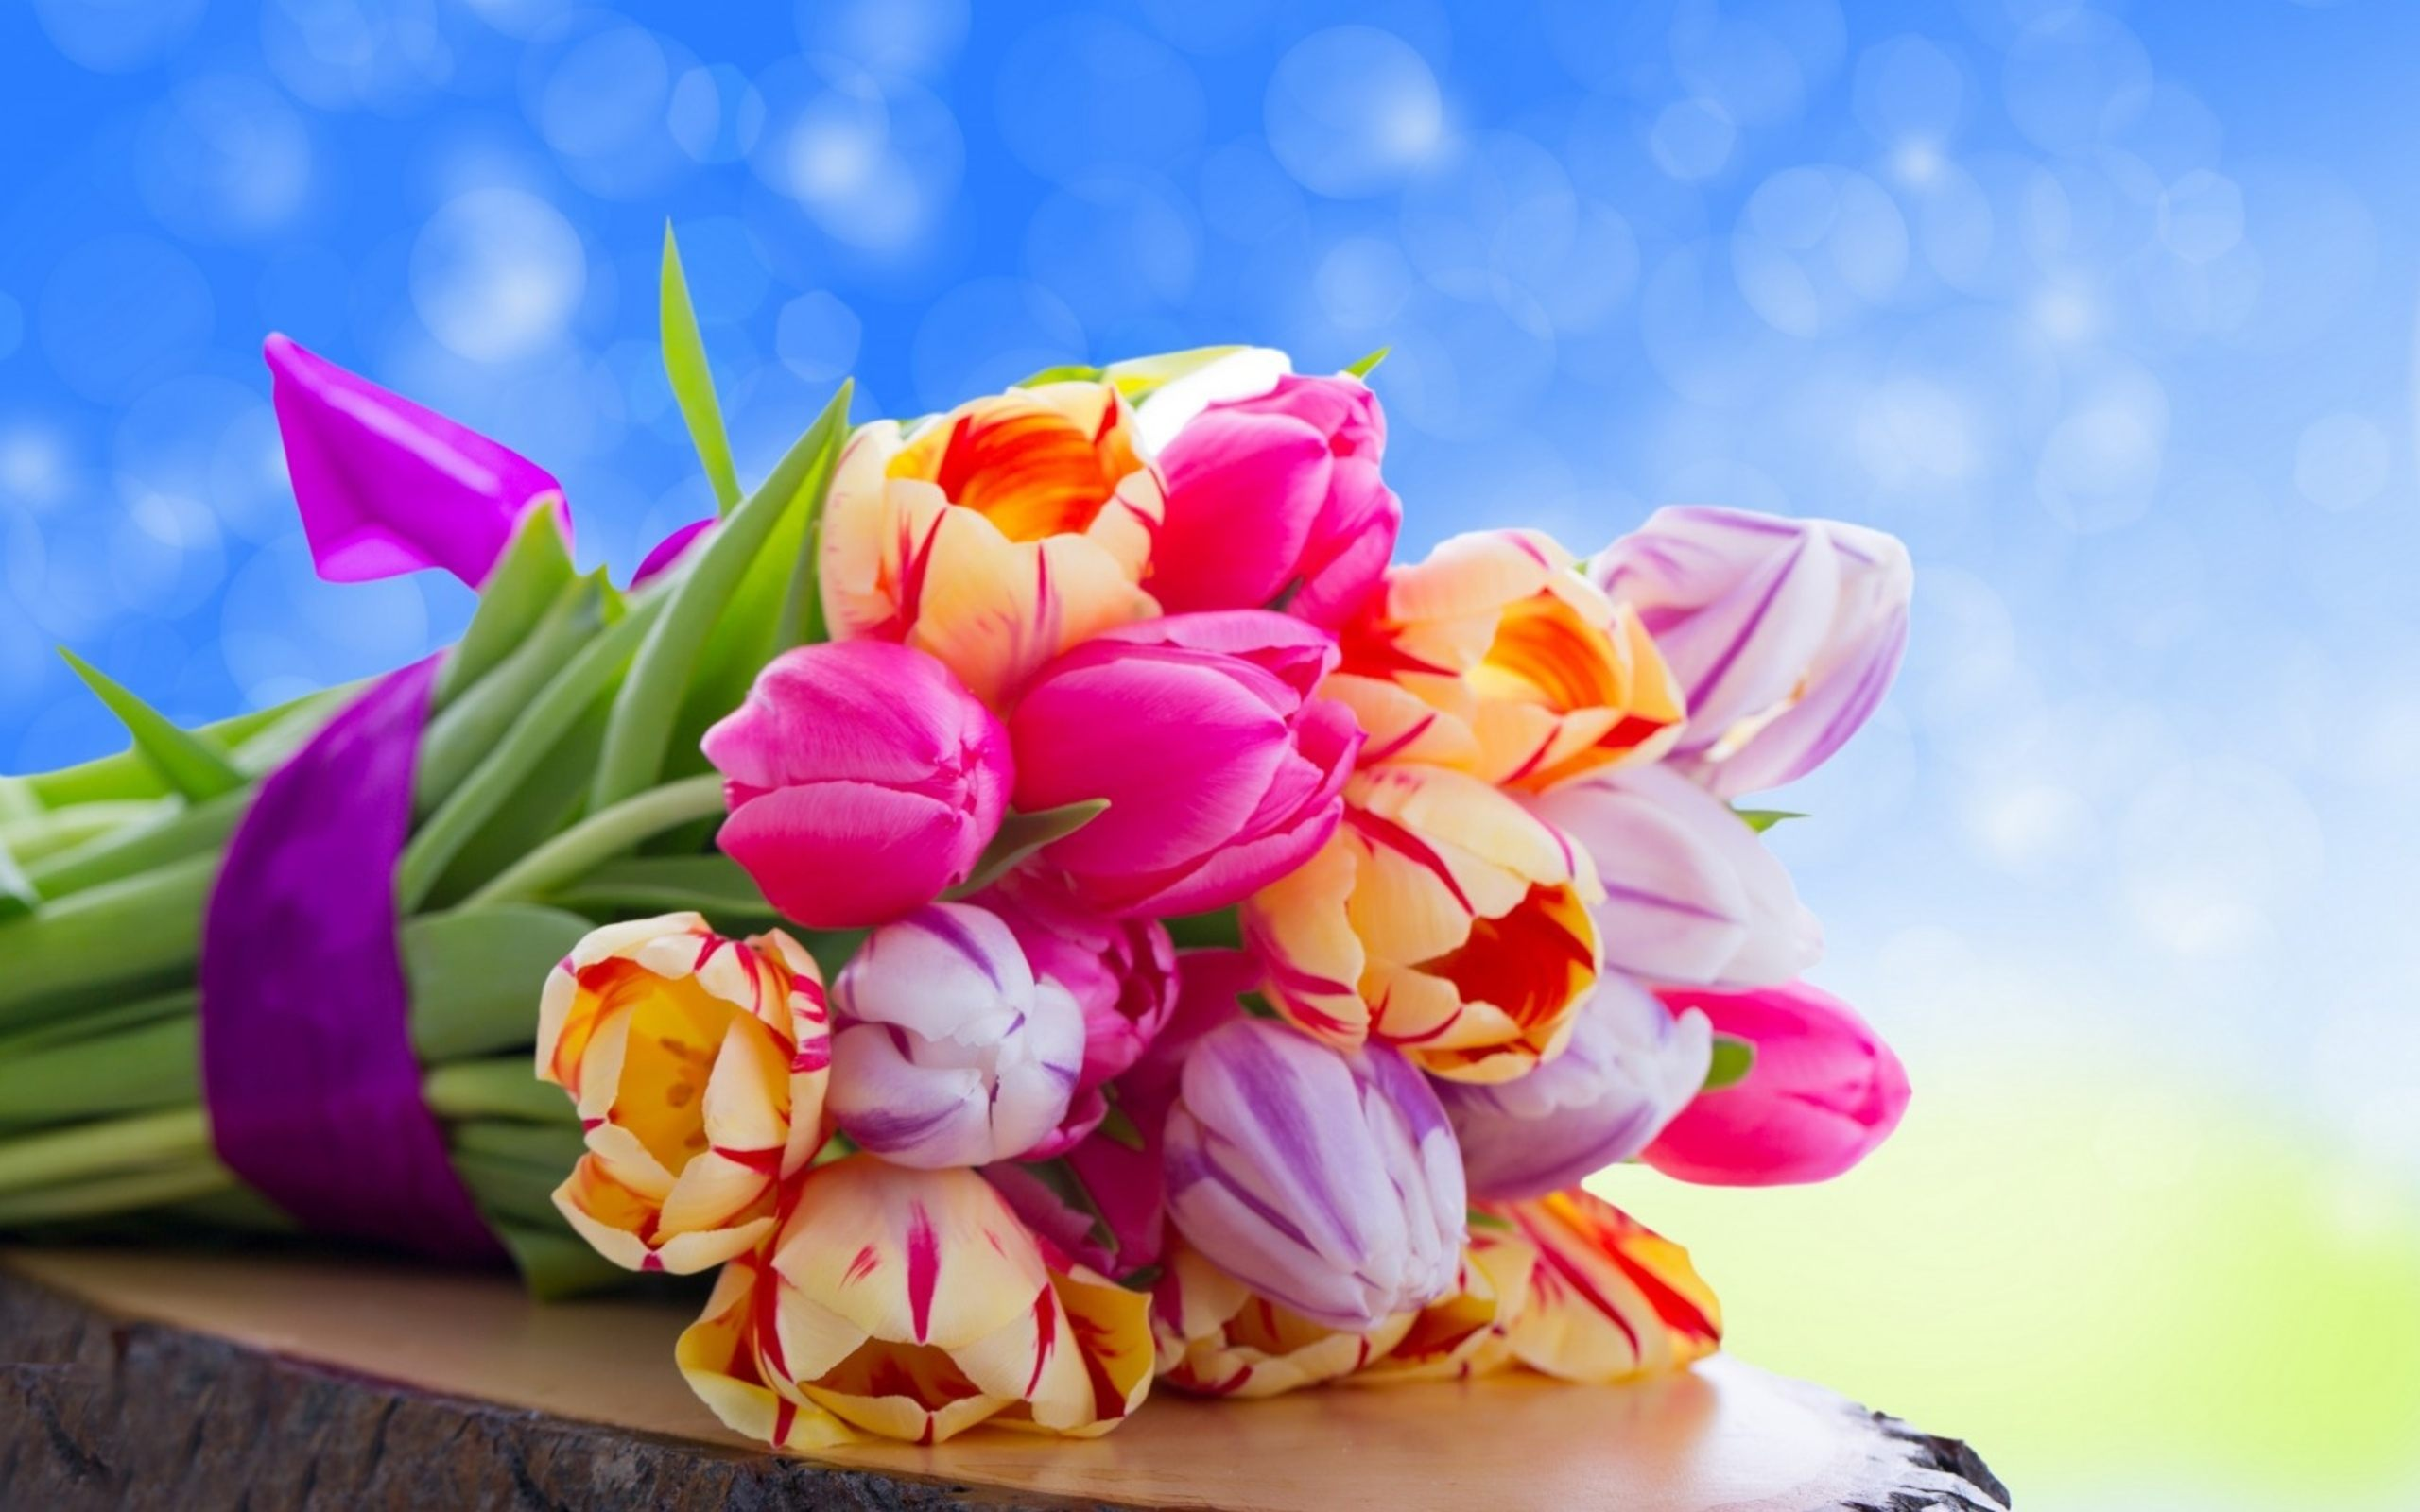 Free Pictures Of Colorful Flowers.